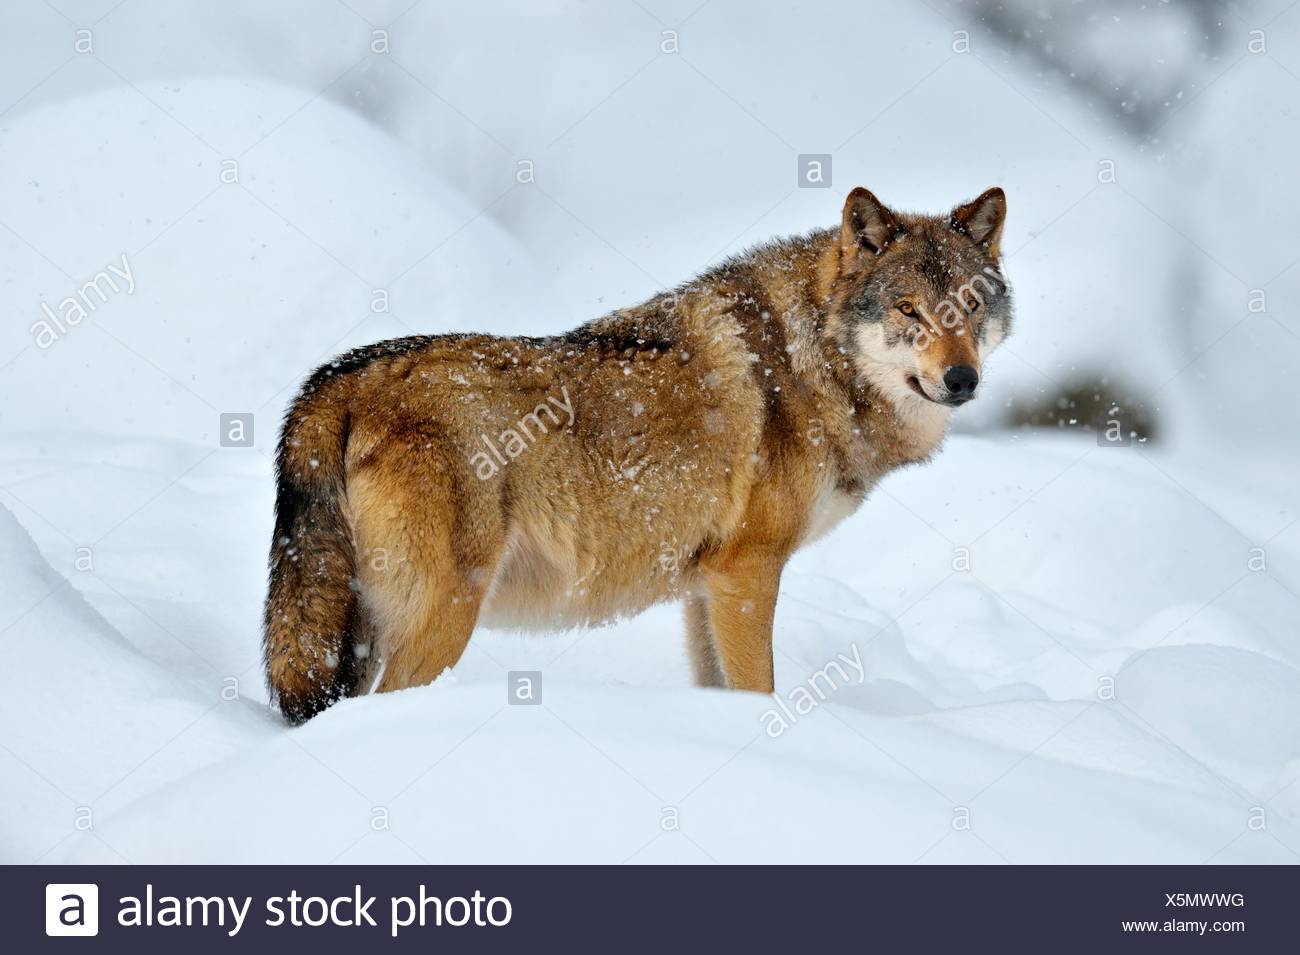 Eurasian wolf, also common wolf or Middle Russian forest wolf (Canis lupus lupus) standing in snow, Canton of Schwyz - Stock Image